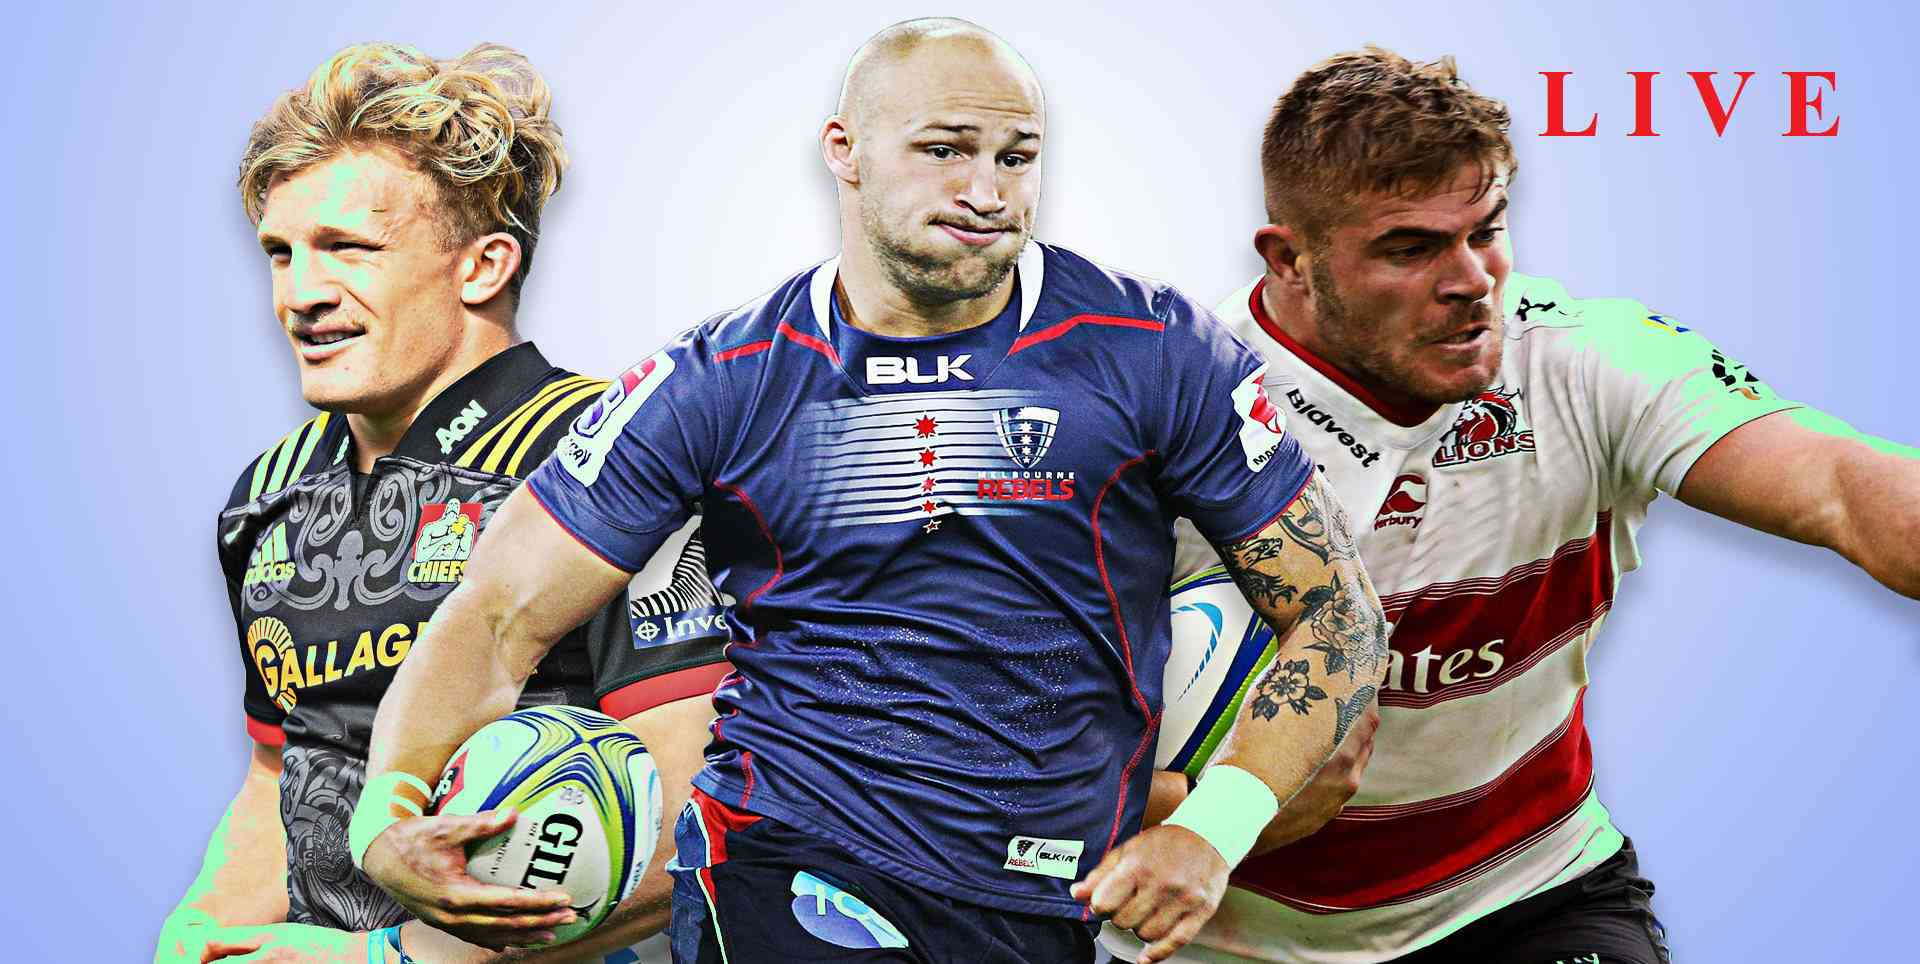 live-toyota-cheetahs-vs-crusaders-online